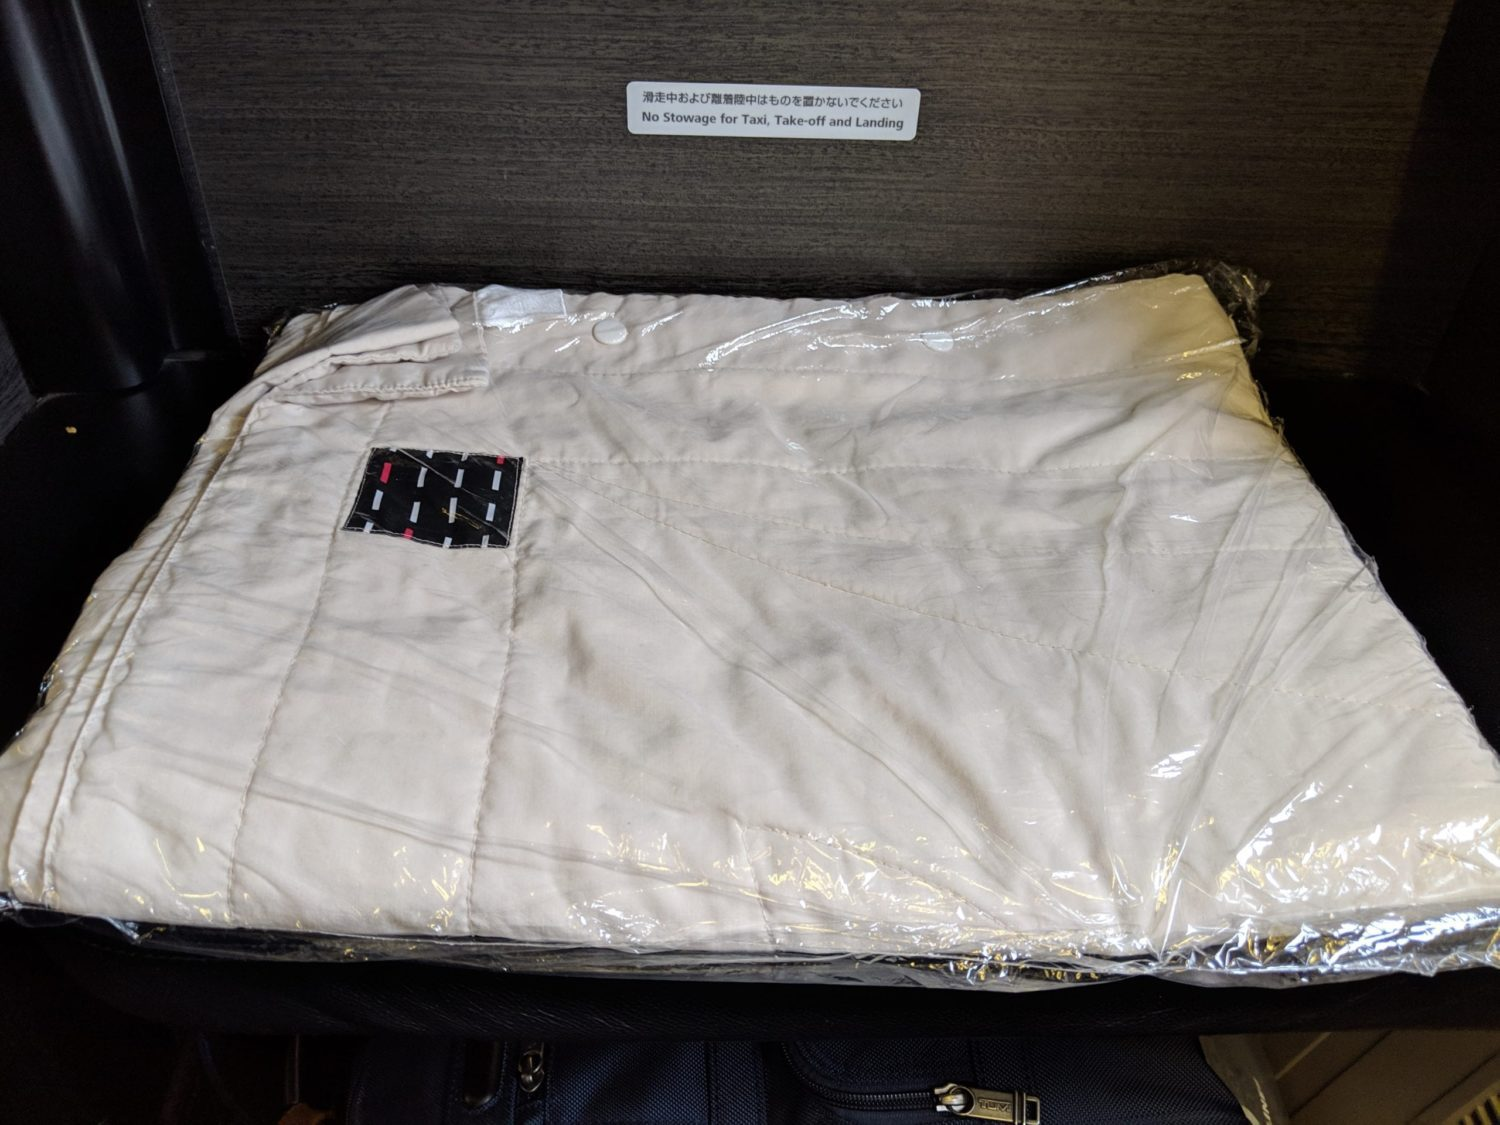 Japan Airlines Business Class amenities